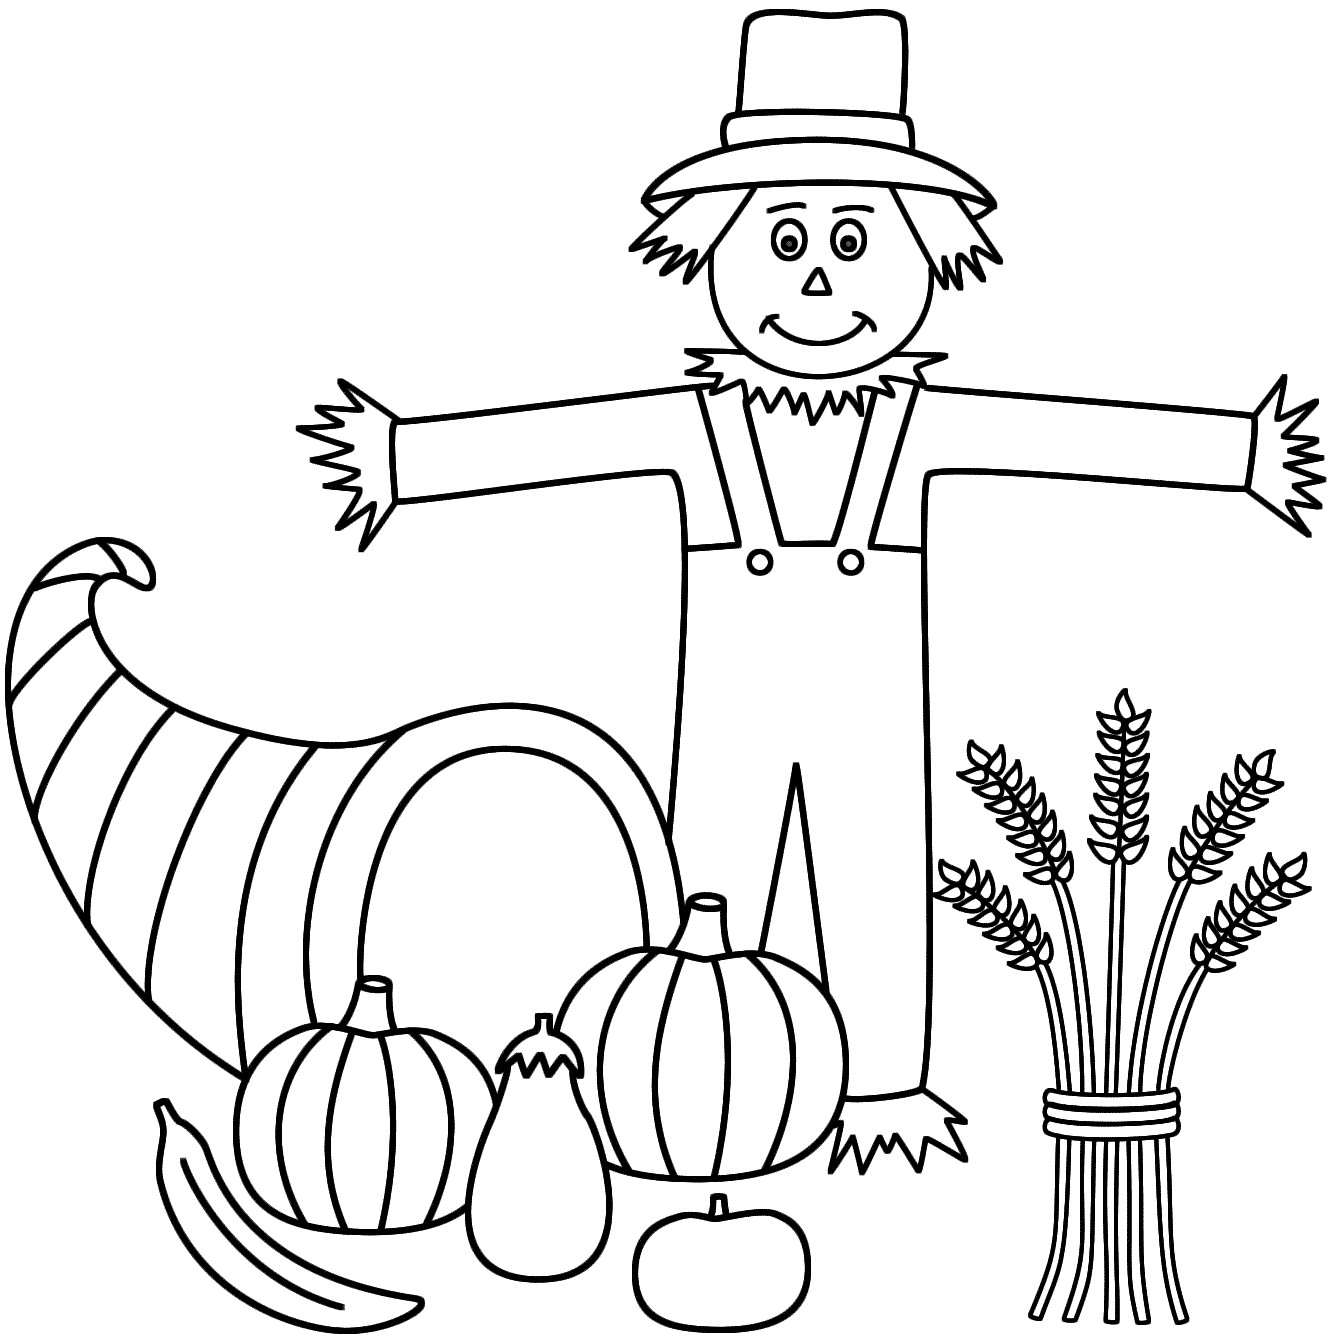 1339x1339 Best Of Cute Scarecrow Coloring Pages Leri Co Throughout Page